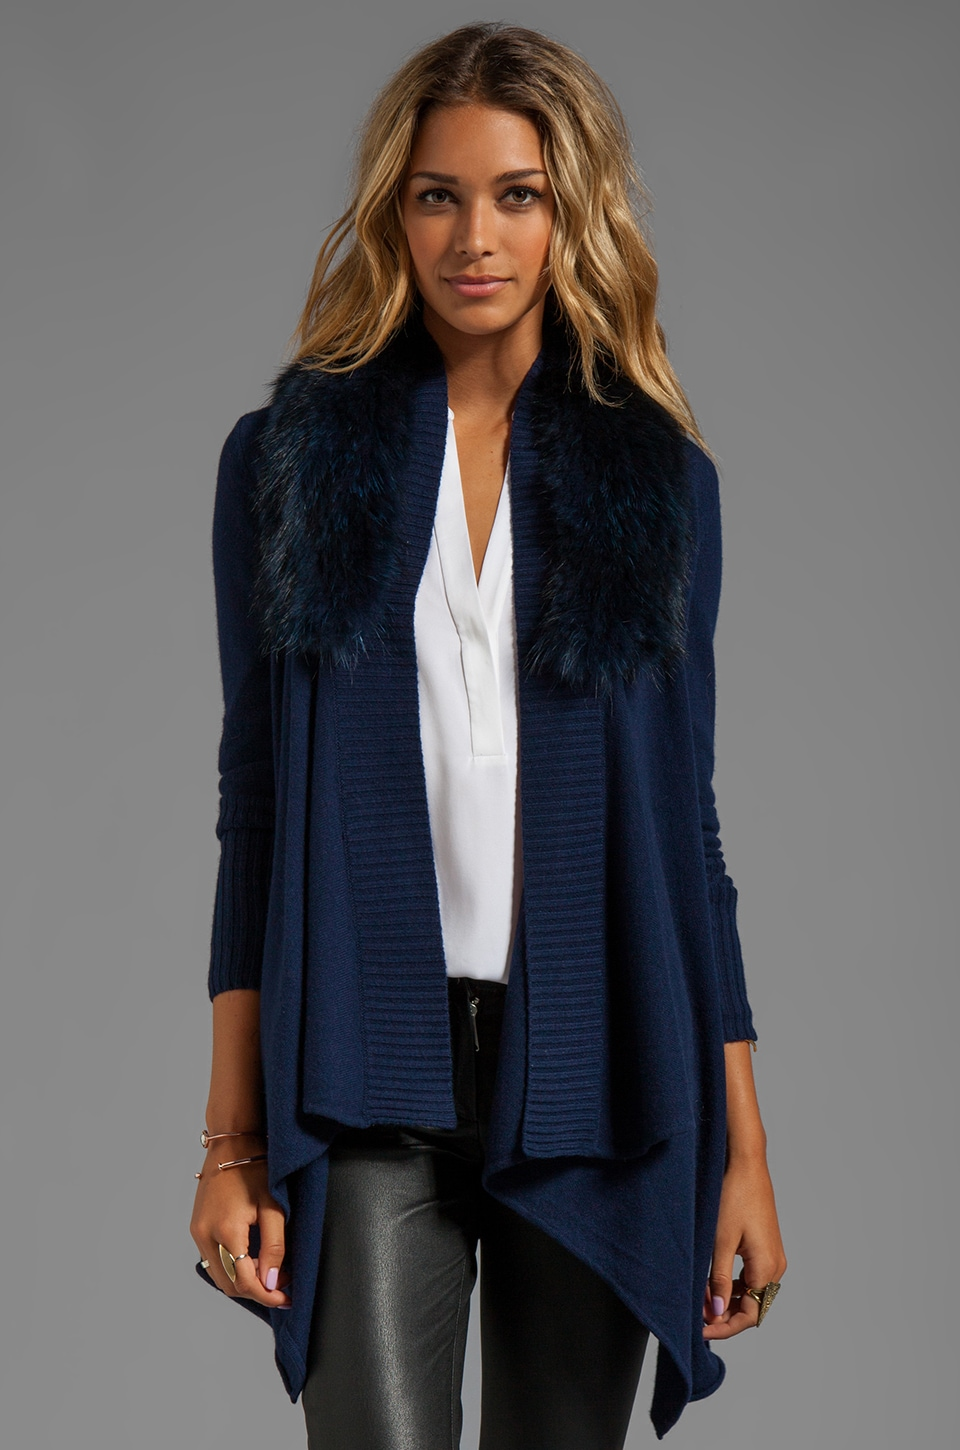 Alice + Olivia Emerson Stain Washed Cascade Cardigan in Denim